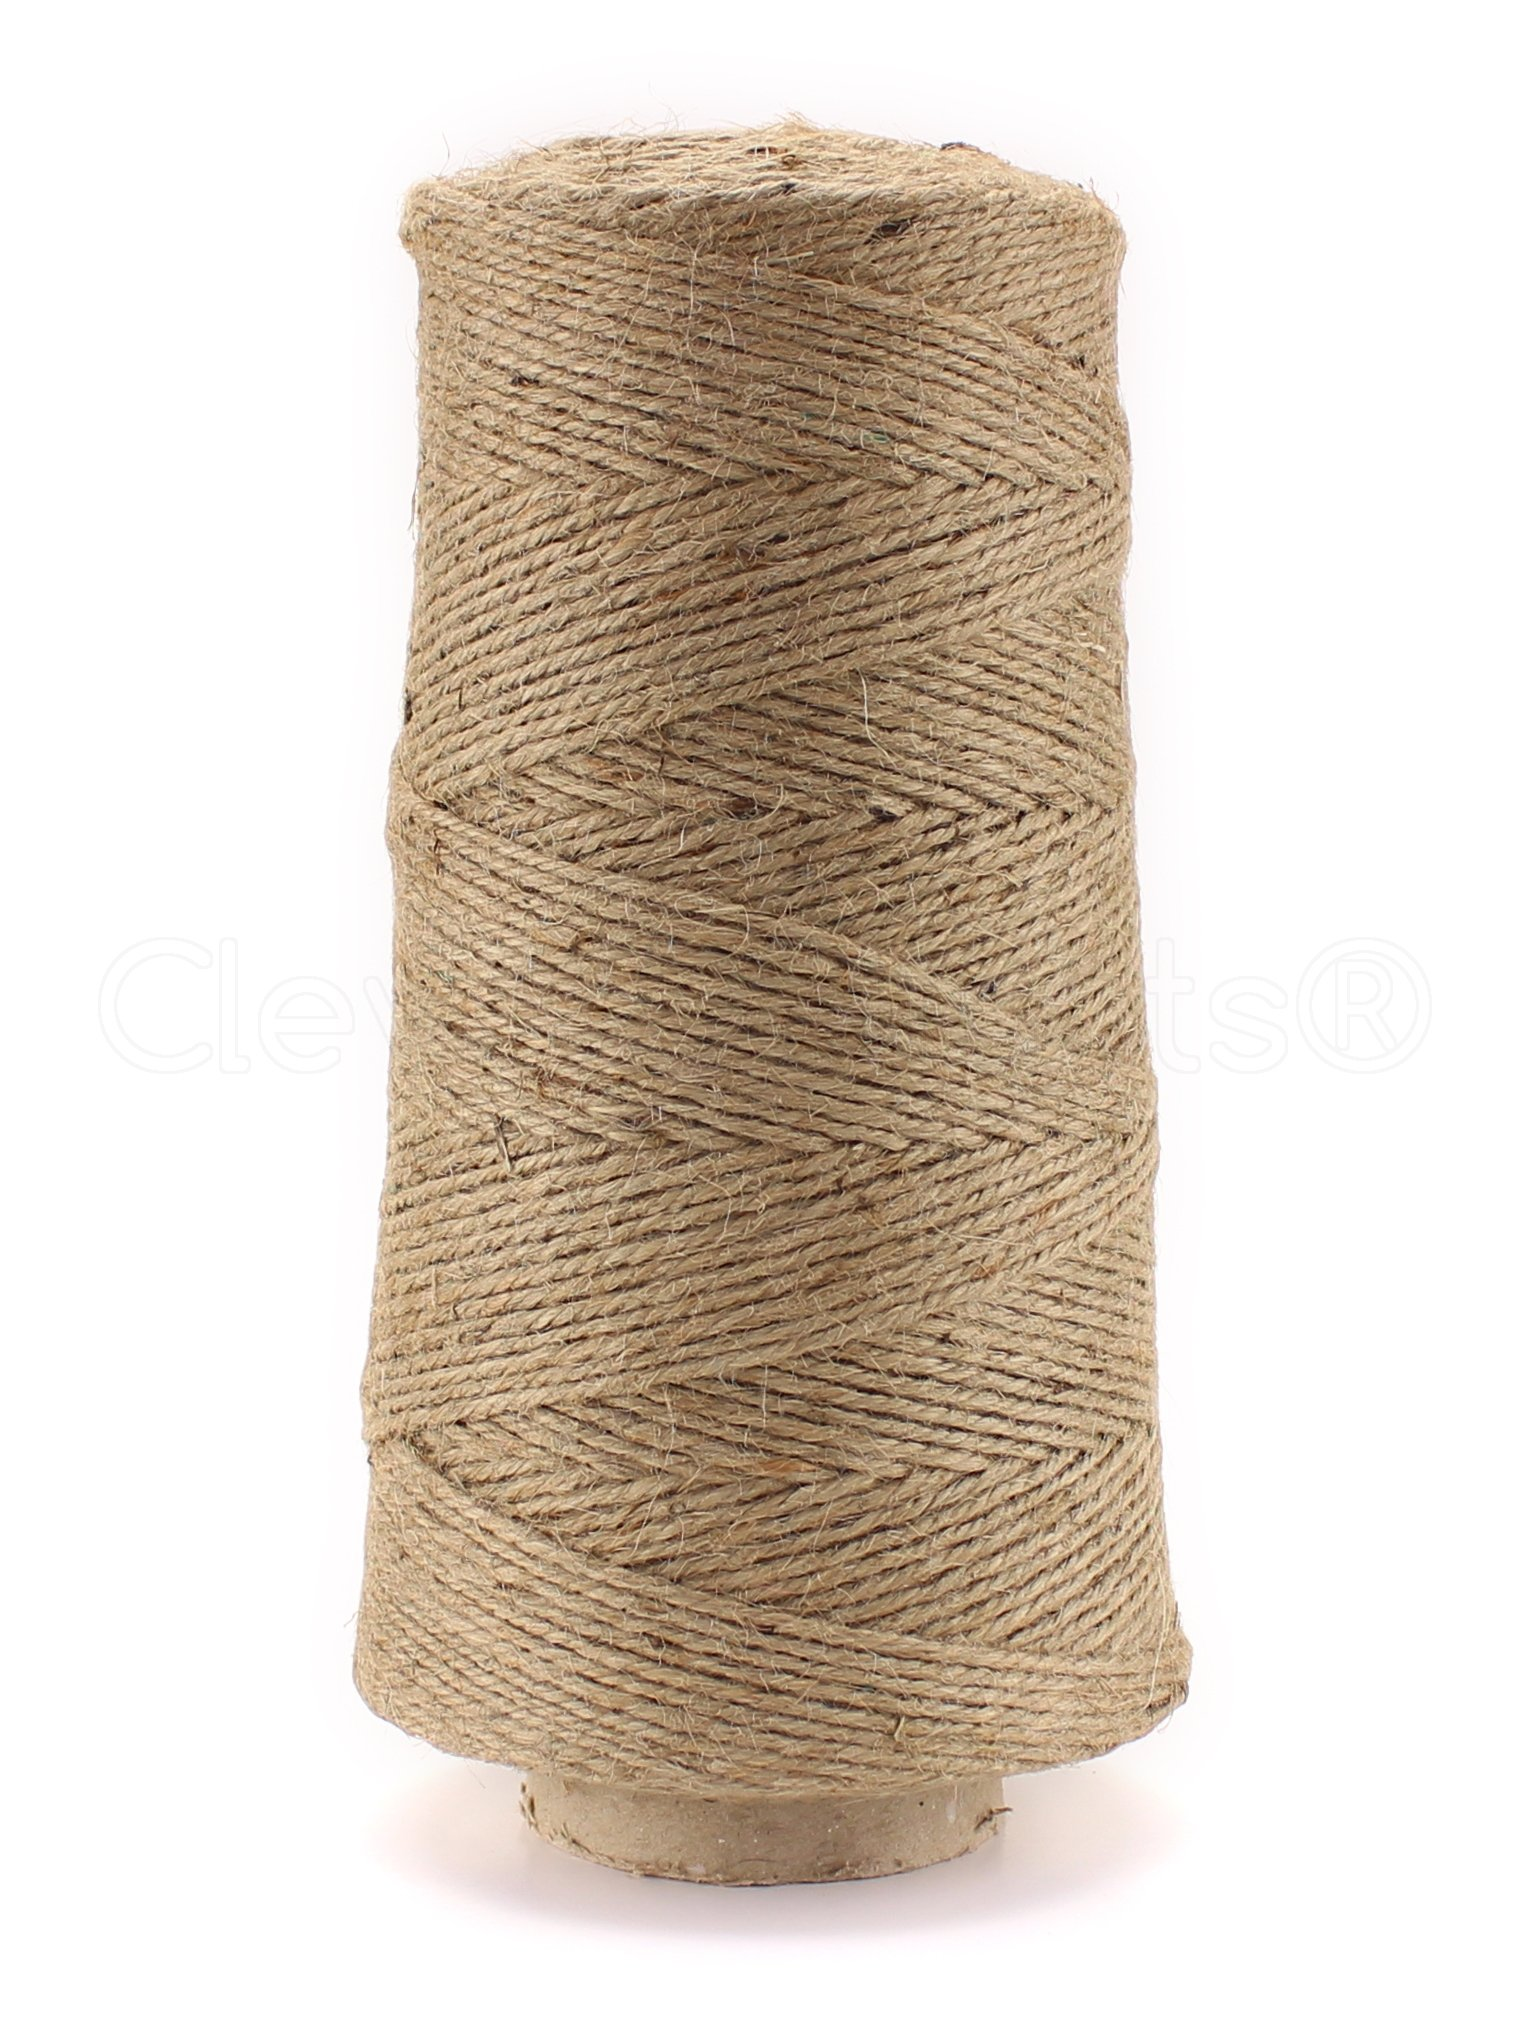 CleverDelights 1000 Foot Jute Twine - 3 Ply - Heavy Duty - Eco-Friendly Jute String Rope Roll - 1000'